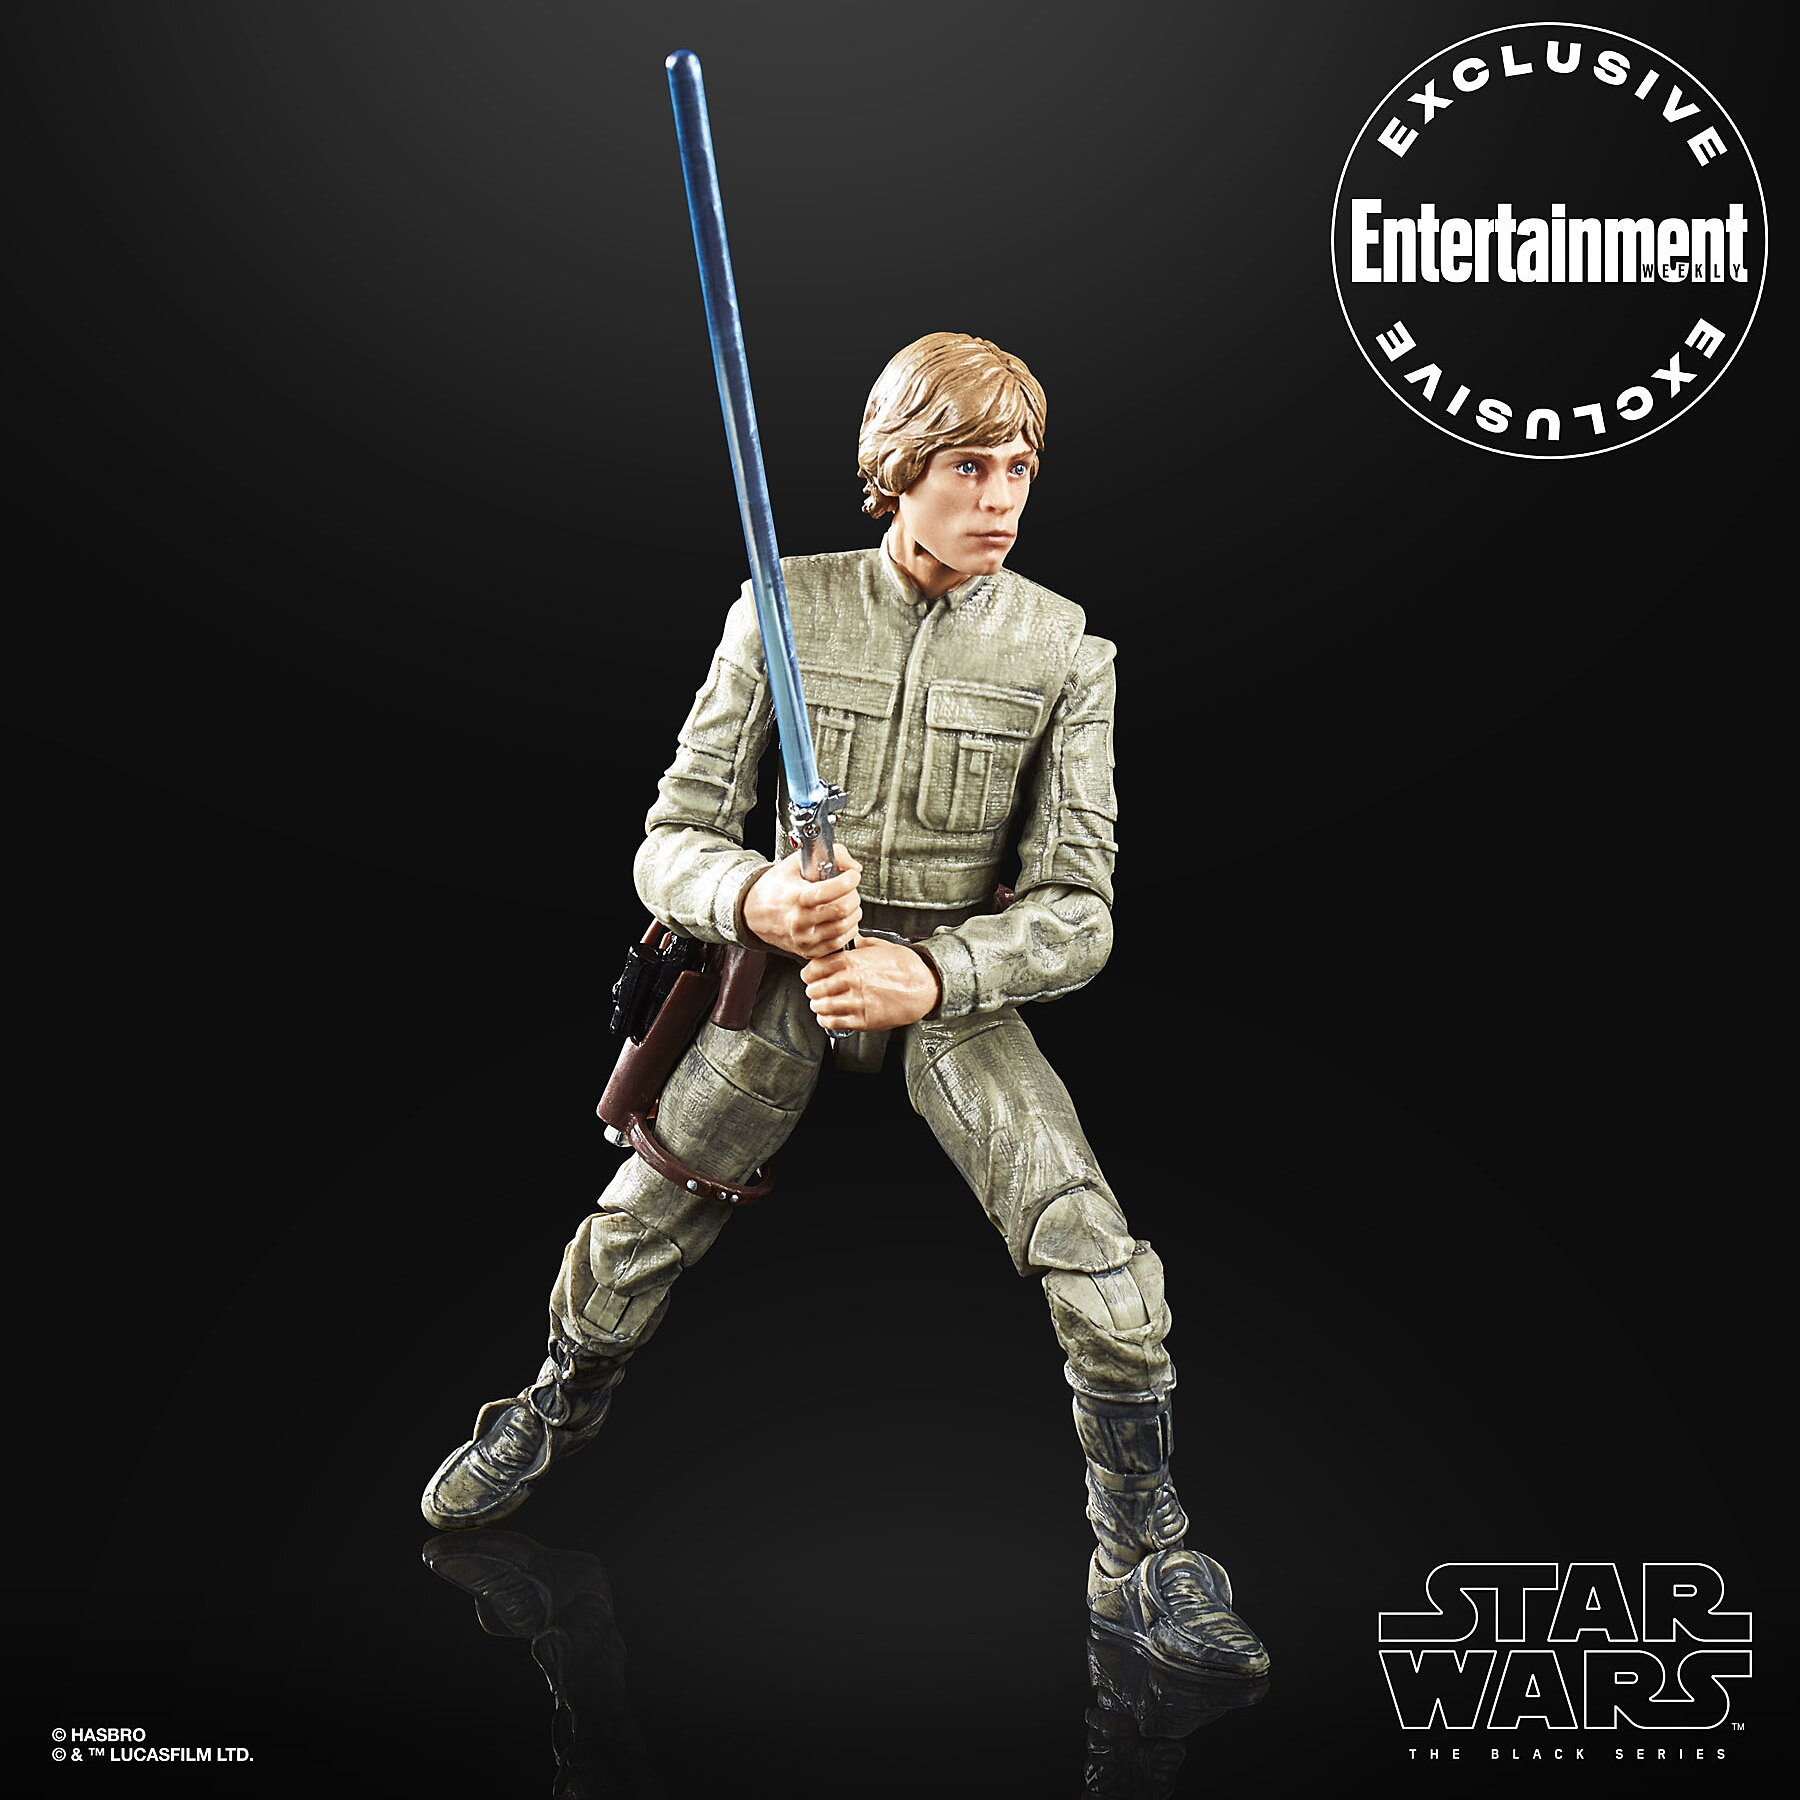 Star Wars Reveals New Empire Strikes Back Toys For 40th Anniversary Ew Com